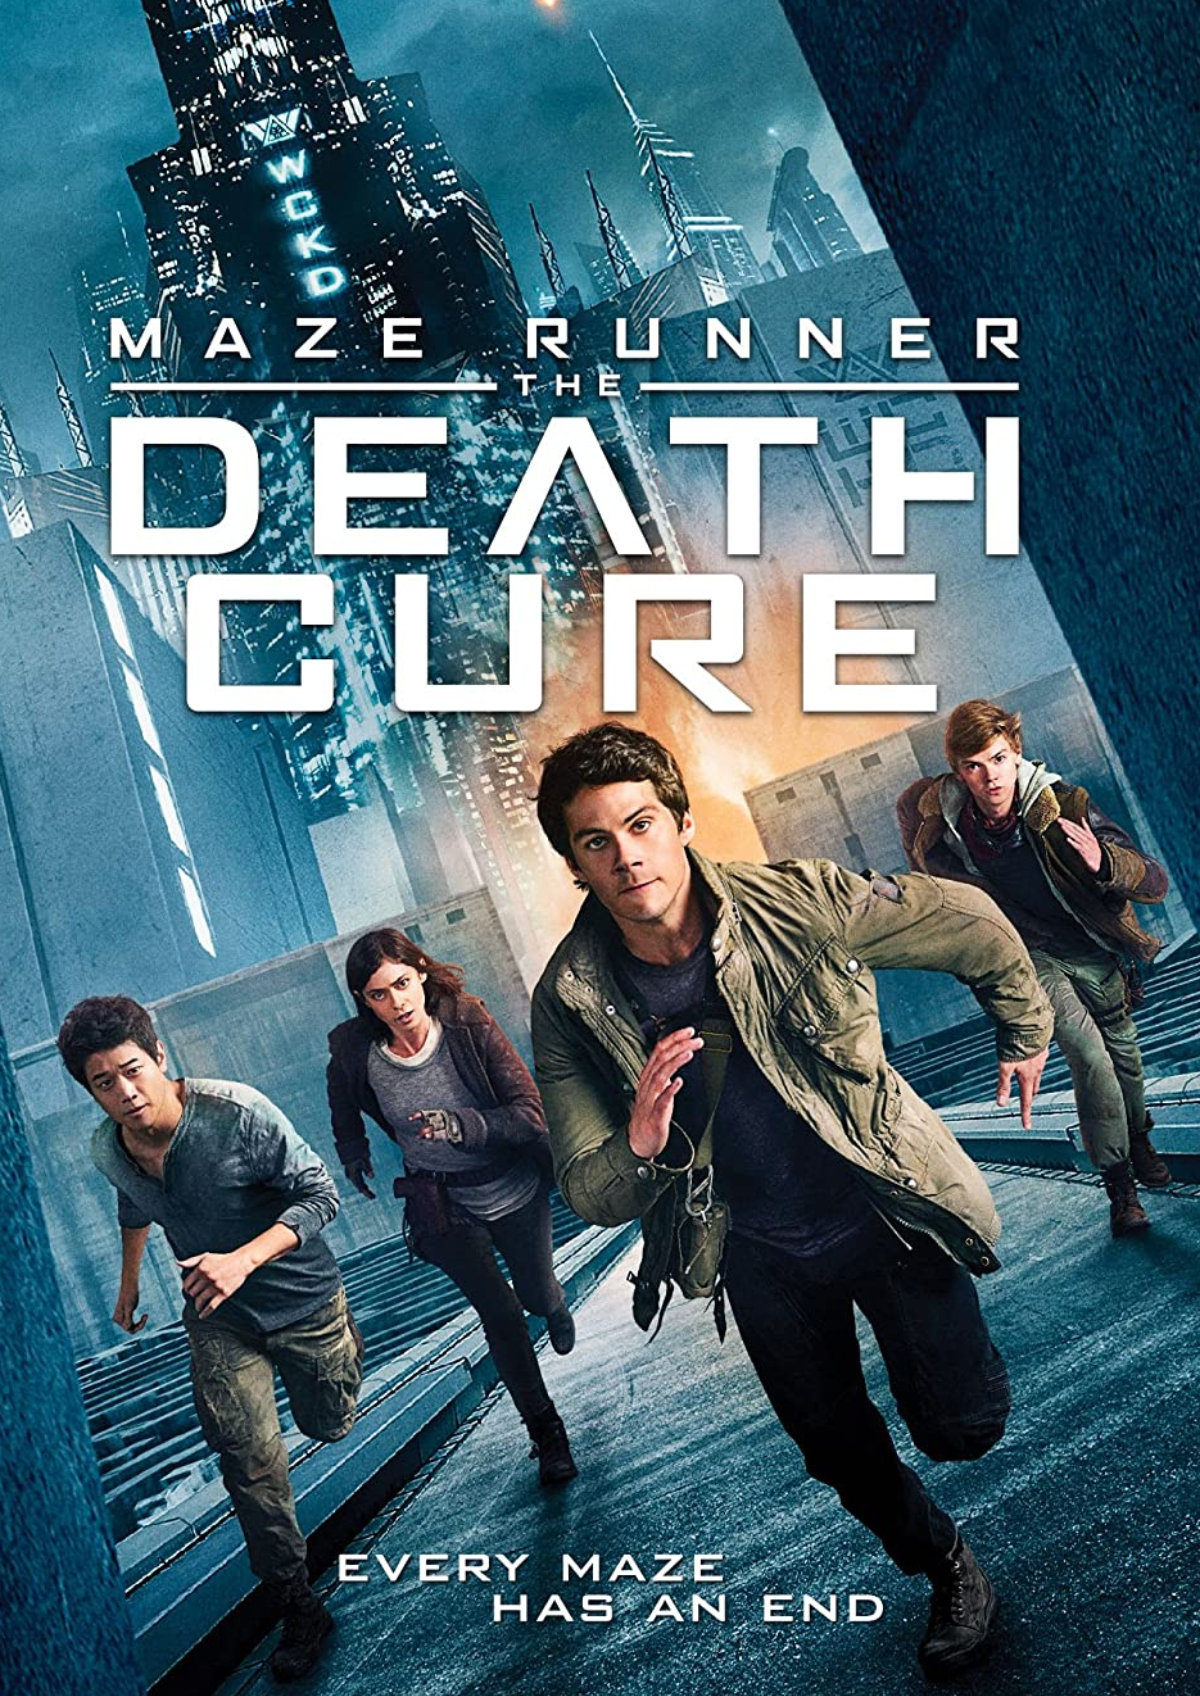 'Maze Runner: The Death Cure' movie poster